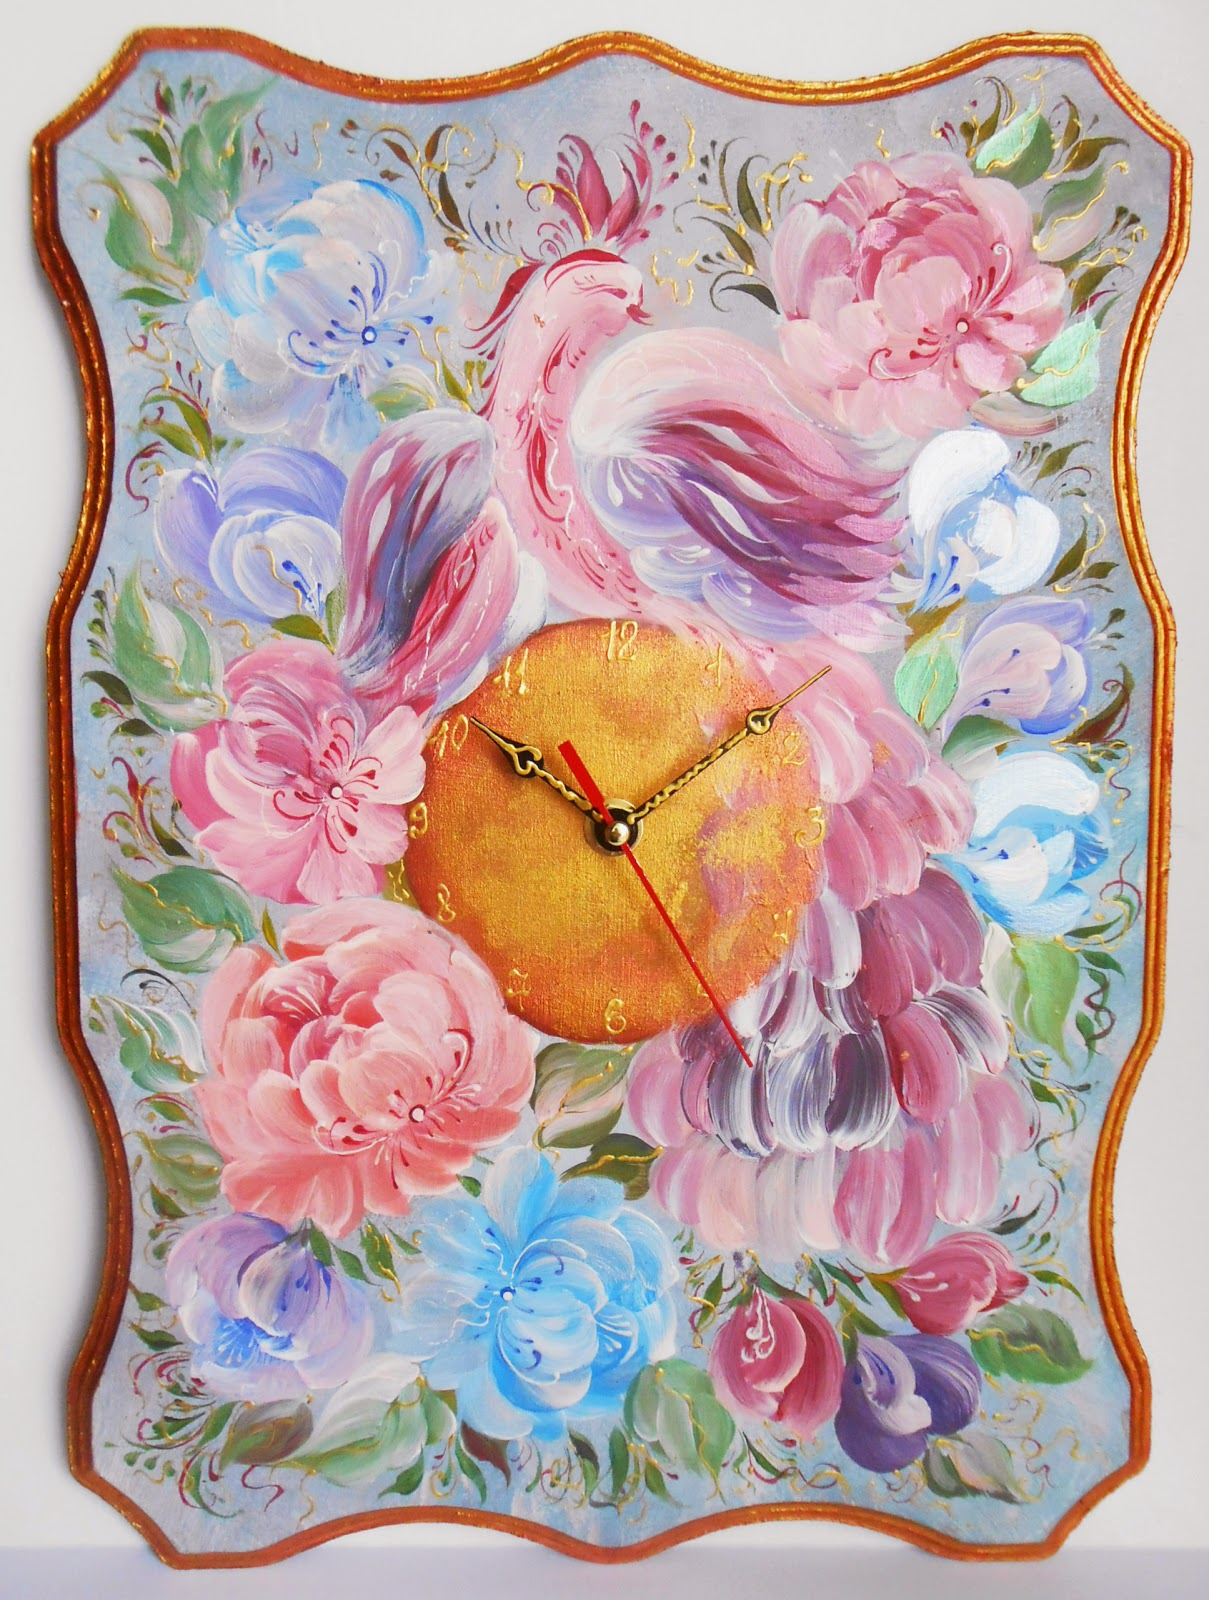 Wall clock with Bird Peacock in russian style Volkhovskaya, handmade in style vintage